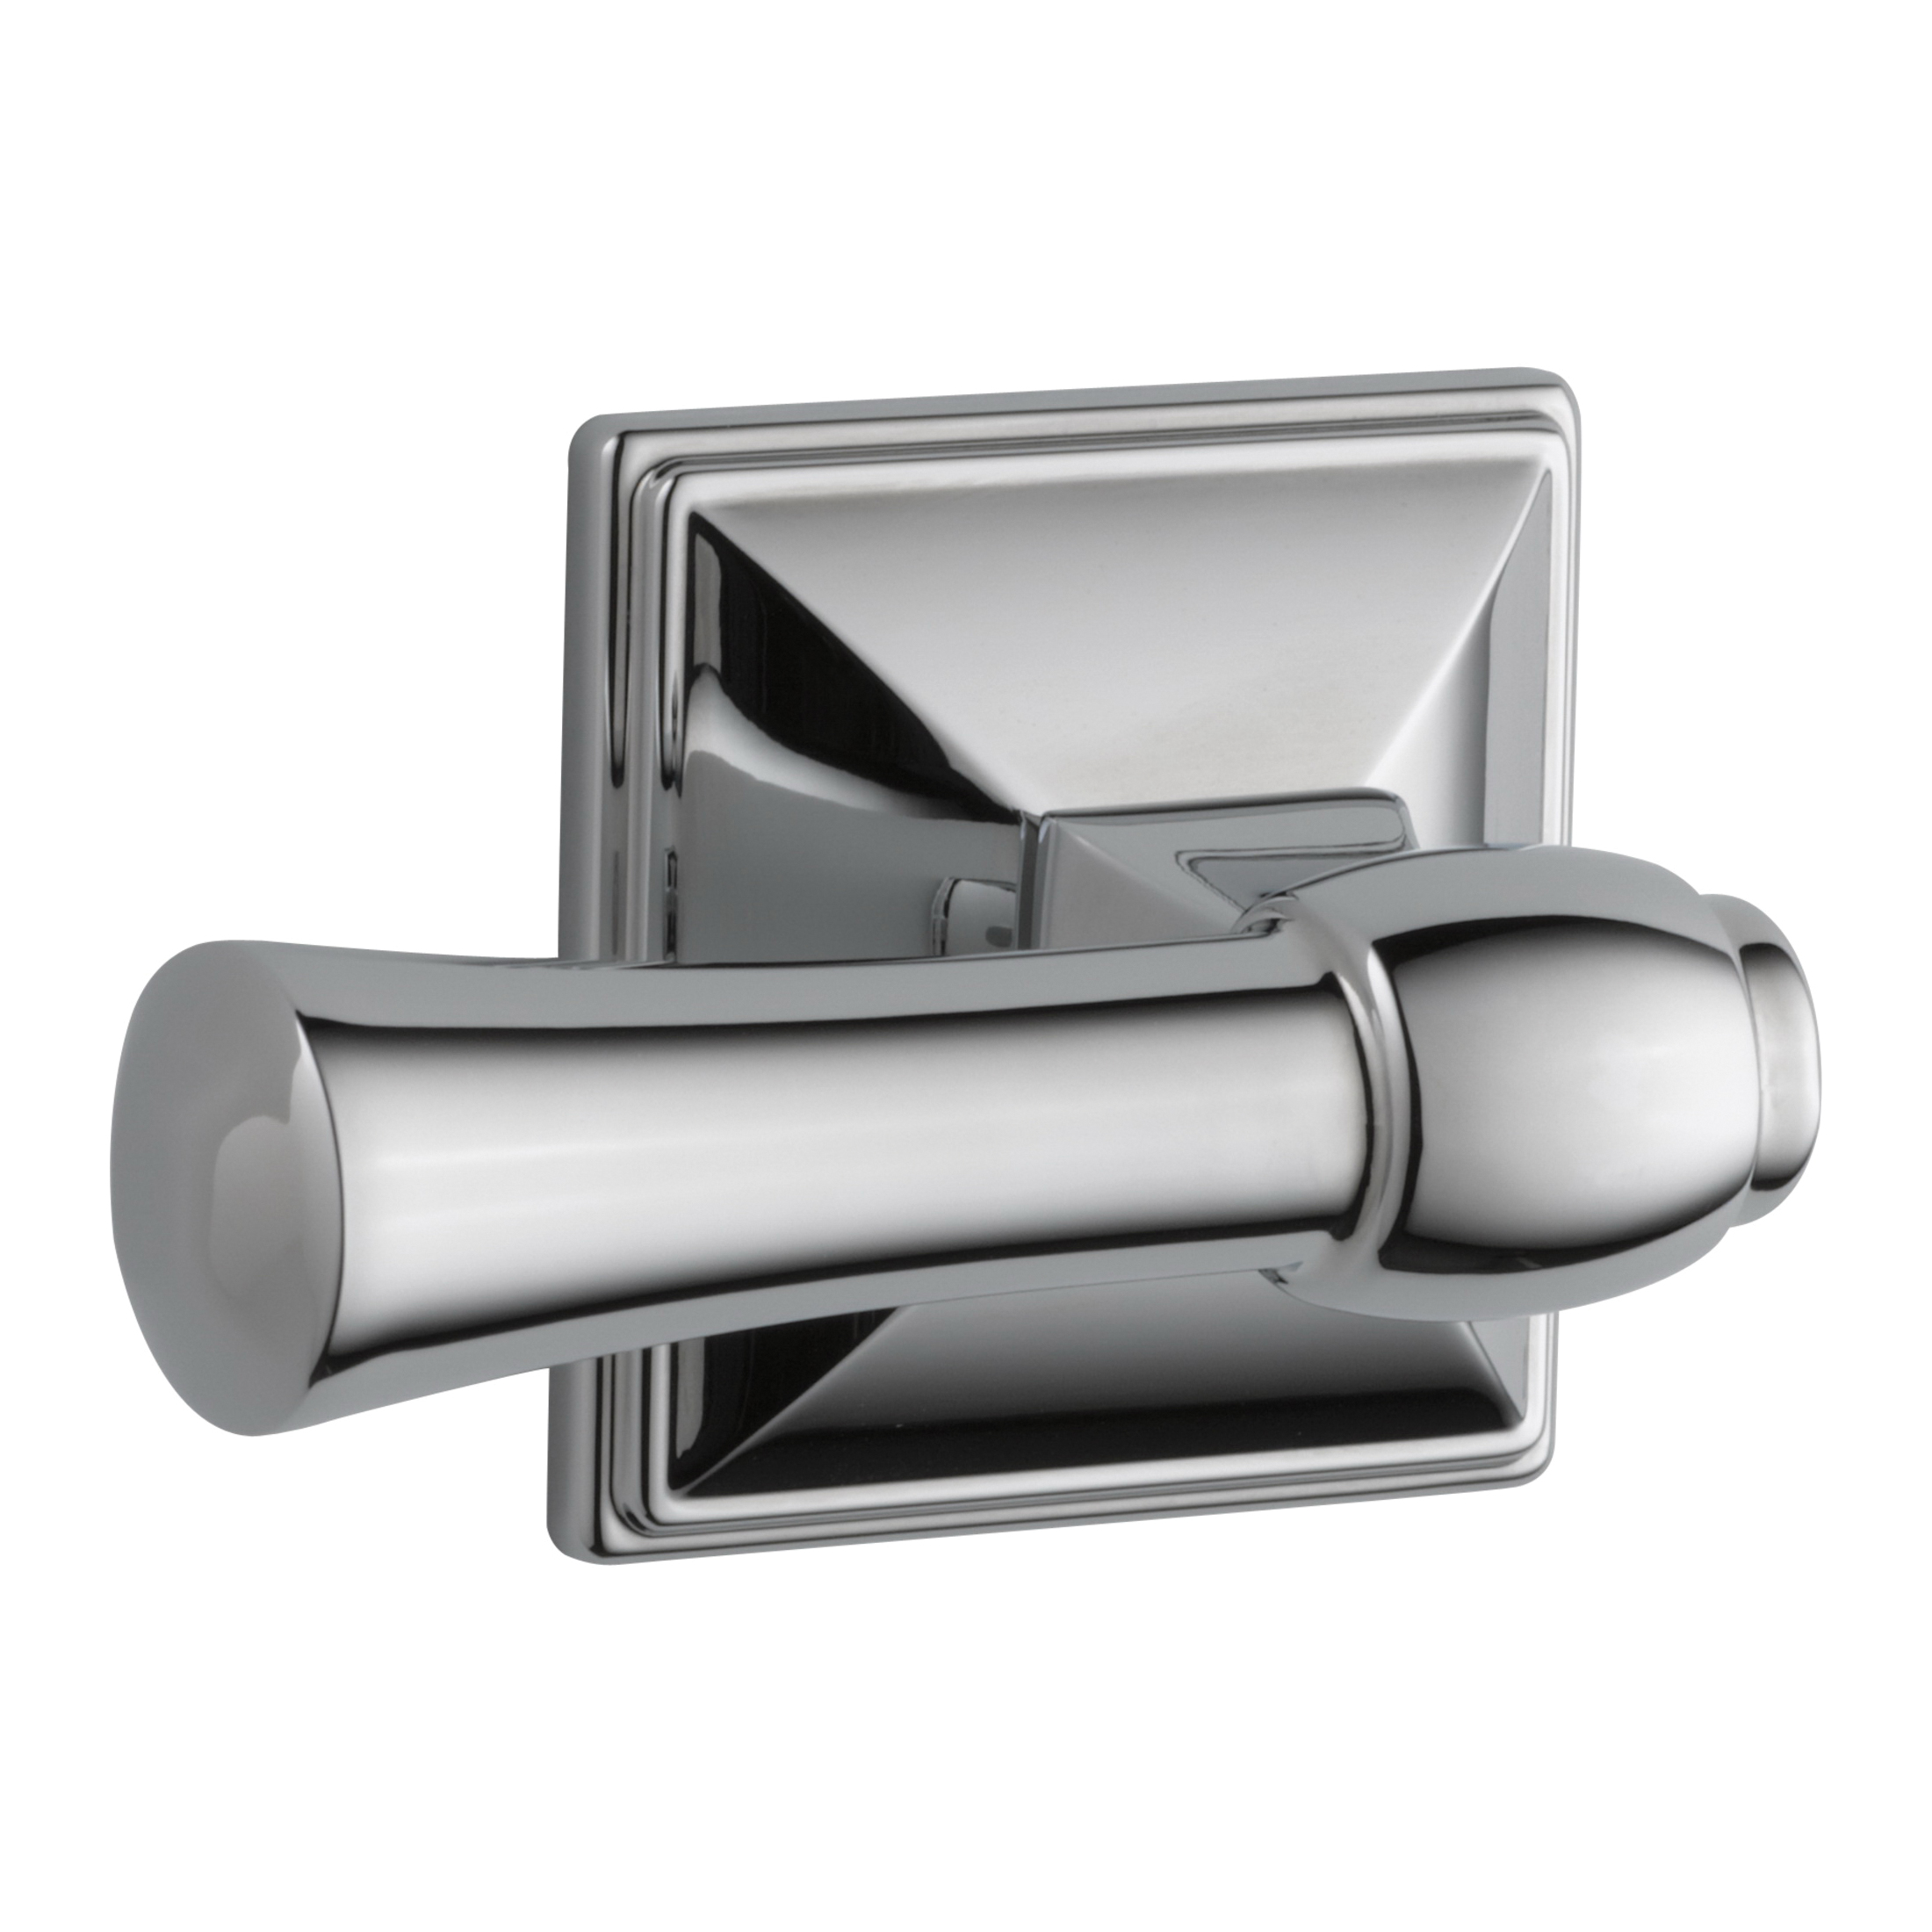 Brizo® 696340-PC Vesi® Traditional Toilet Tank Lever, 3-3/16 in L Arm, Chrome Plated, Import